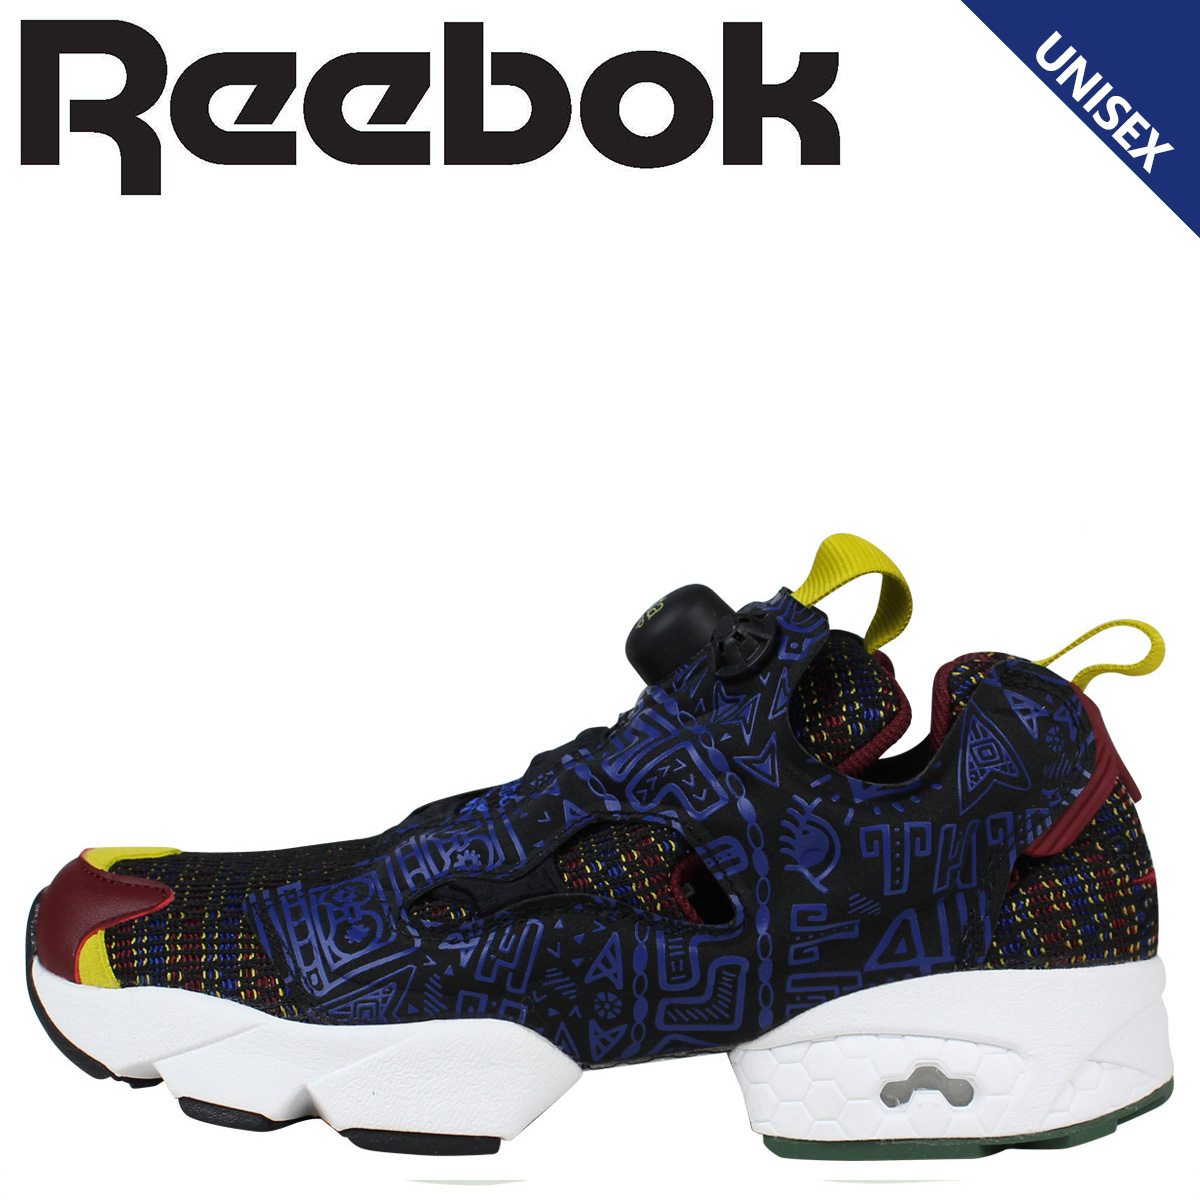 a286fce0d3b6 Sugar Online Shop  Reebok Reebok pump fury sneakers INSTAPUMP FURY AFRICAN  AR1706 men s women s shoes black  8 20 new in stock